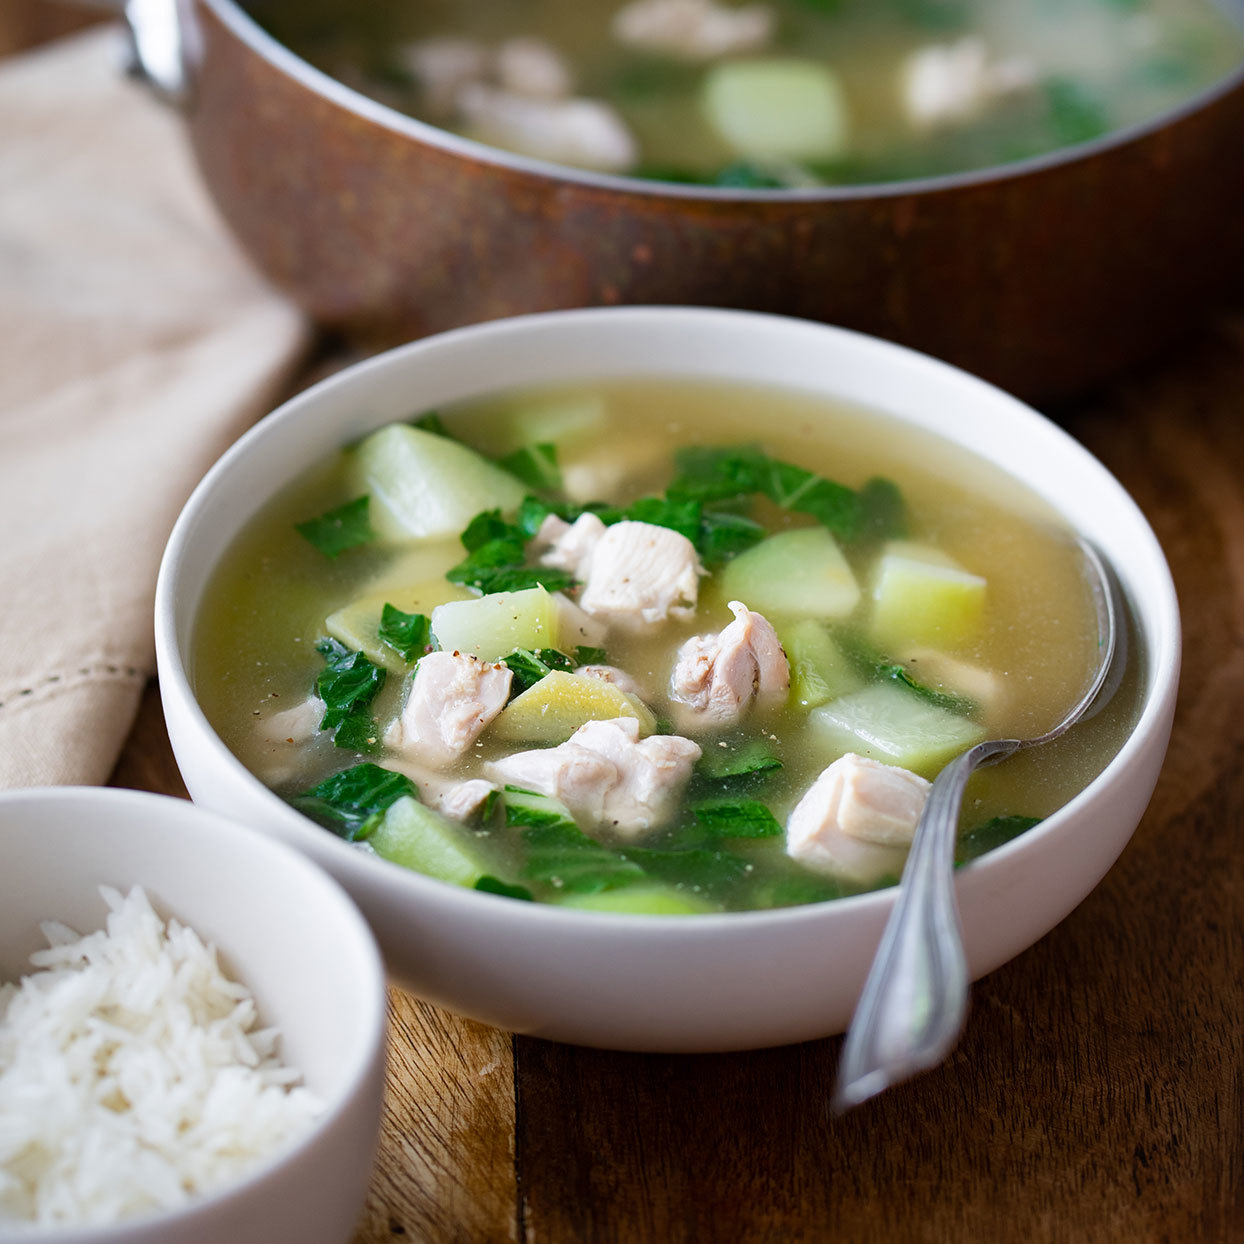 Tinola, a comforting chicken soup seasoned with plenty of ginger and garlic, has countless variations throughout the Philippines. The soup calls for malunggay leaves (aka moringa), which can be found fresh or frozen at Asian markets. Bok choy is a good substitute. Feel free to increase the amounts of garlic and fish sauce for an even more flavorful soup. Serve this easy and healthy chicken soup on its own or with jasmine rice, quinoa or wild rice.